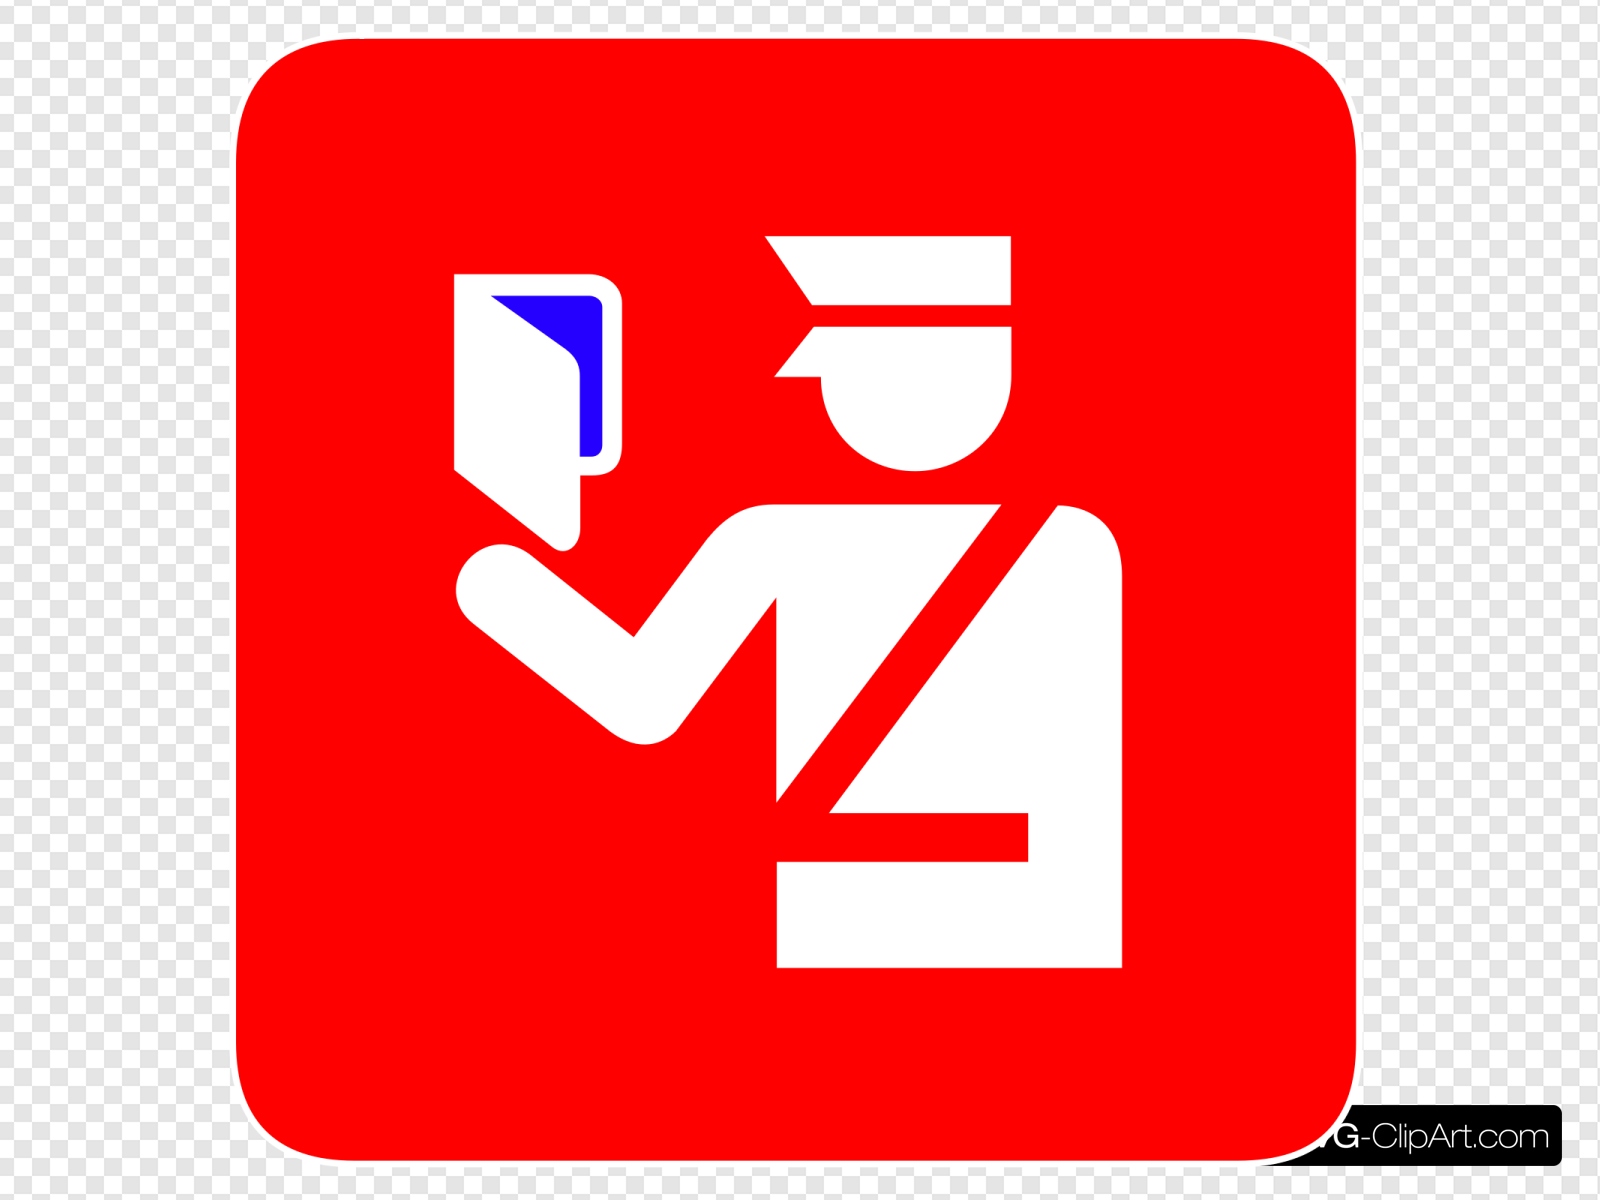 Immigration Police In Red Background Blue 3 Visa Clip art.